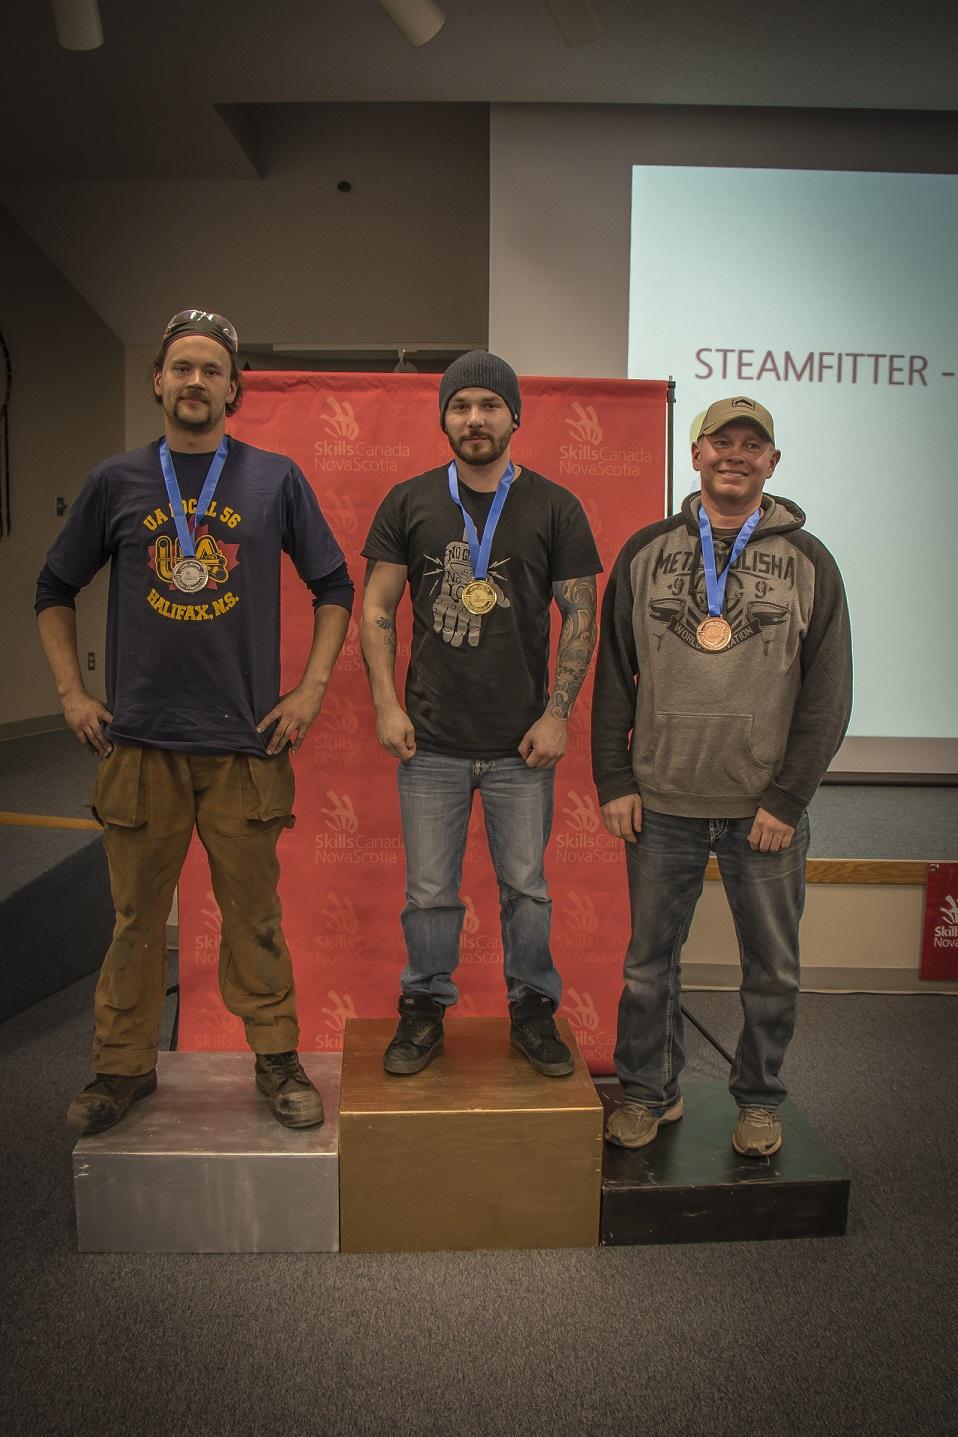 Local students earn medals at skills competition